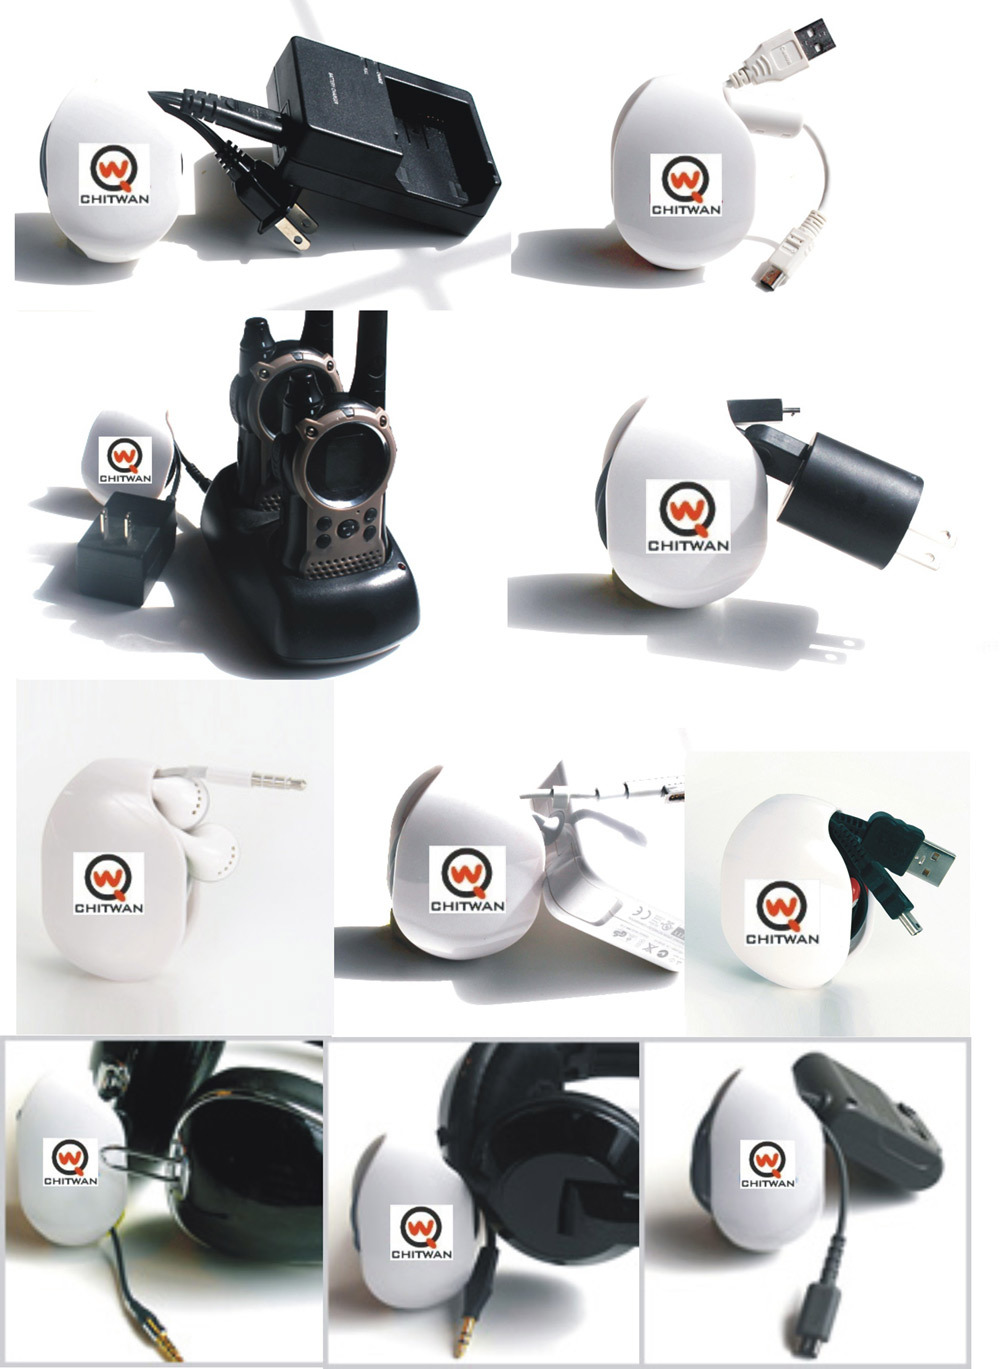 Shenzhen supplier AUTOMATIC cord organizer , self-rod cable winder for headphones & earbuds